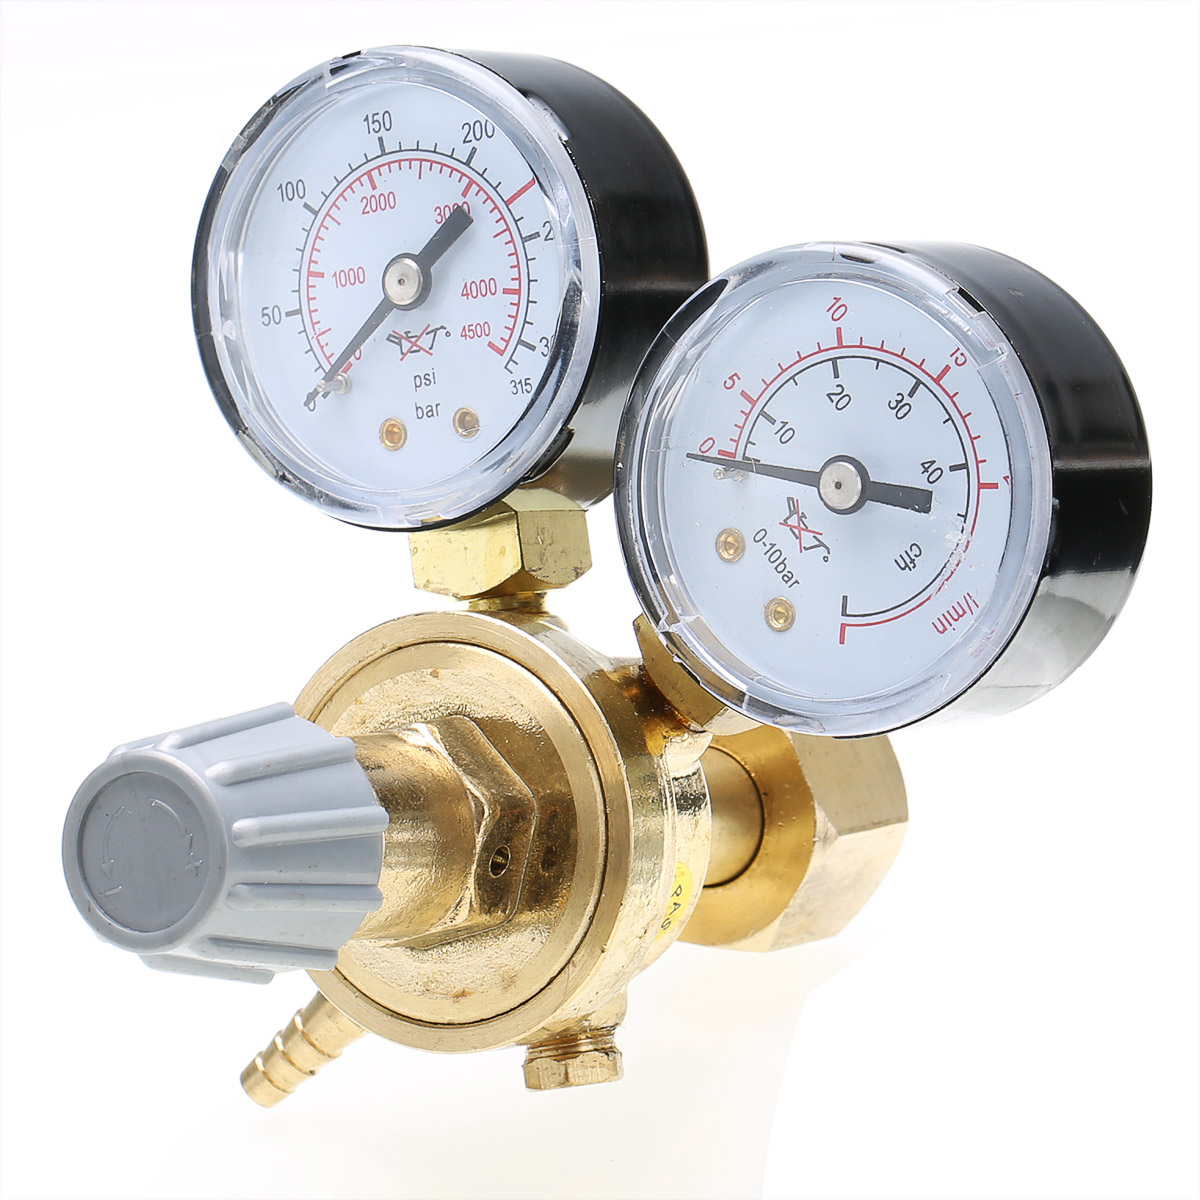 цены  High Quality Argon CO2 Pressure Reducer Mig Flow Control Valve Dual Gauge Welding Regulator 108x120x125mm